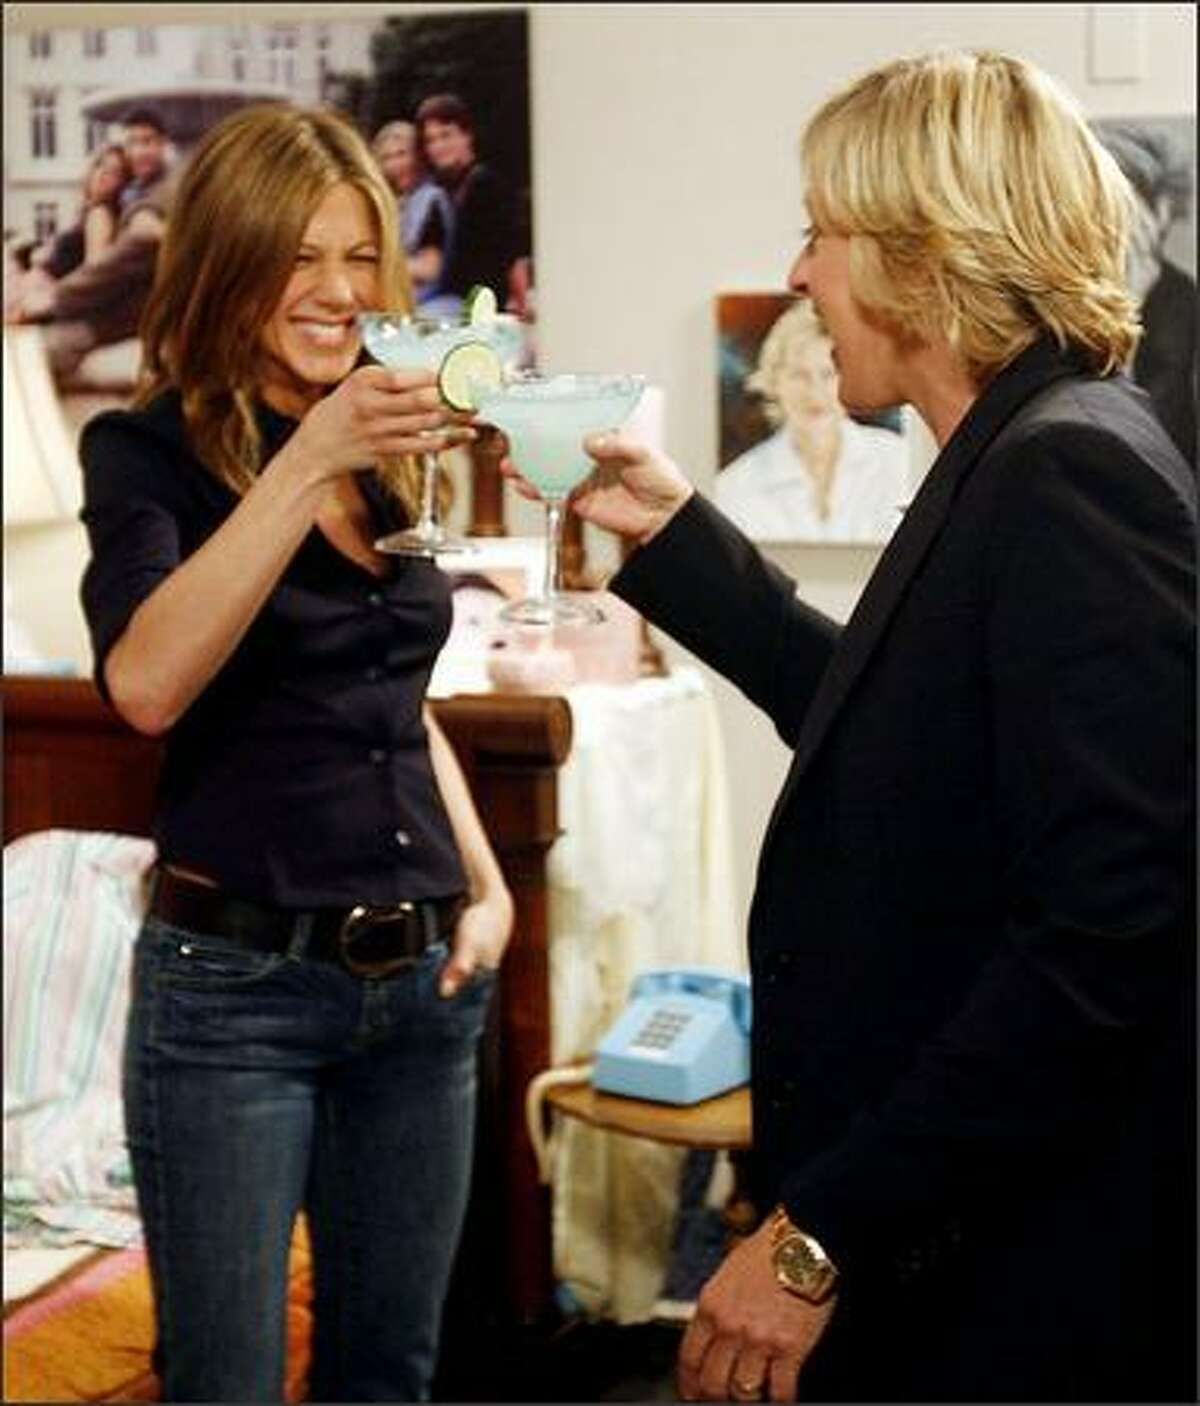 Another reason to love Ellen: She provides housing for her celebrity friends. On Friday, the popular talk-show host unveiled her surprise to guest Jennifer Aniston -- a custom-made backstage suite decorated with